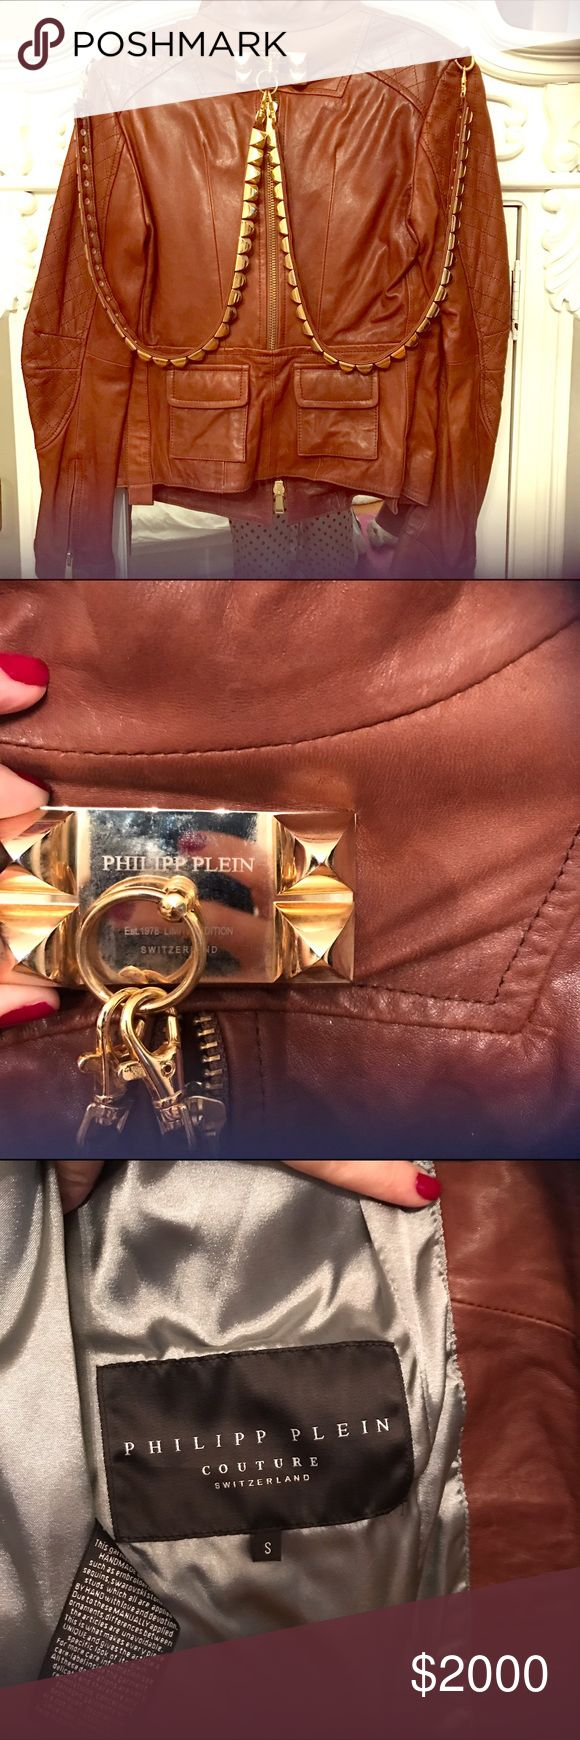 Philip Plein Couture brown leather moto jacket Gorgeous 100% authentic Philip Plein moto jacket with gold hardware. Hardware is removable/optional. 100%lamb leather/buttery soft. Size small. Never worn Philipp Plein Jackets & Coats